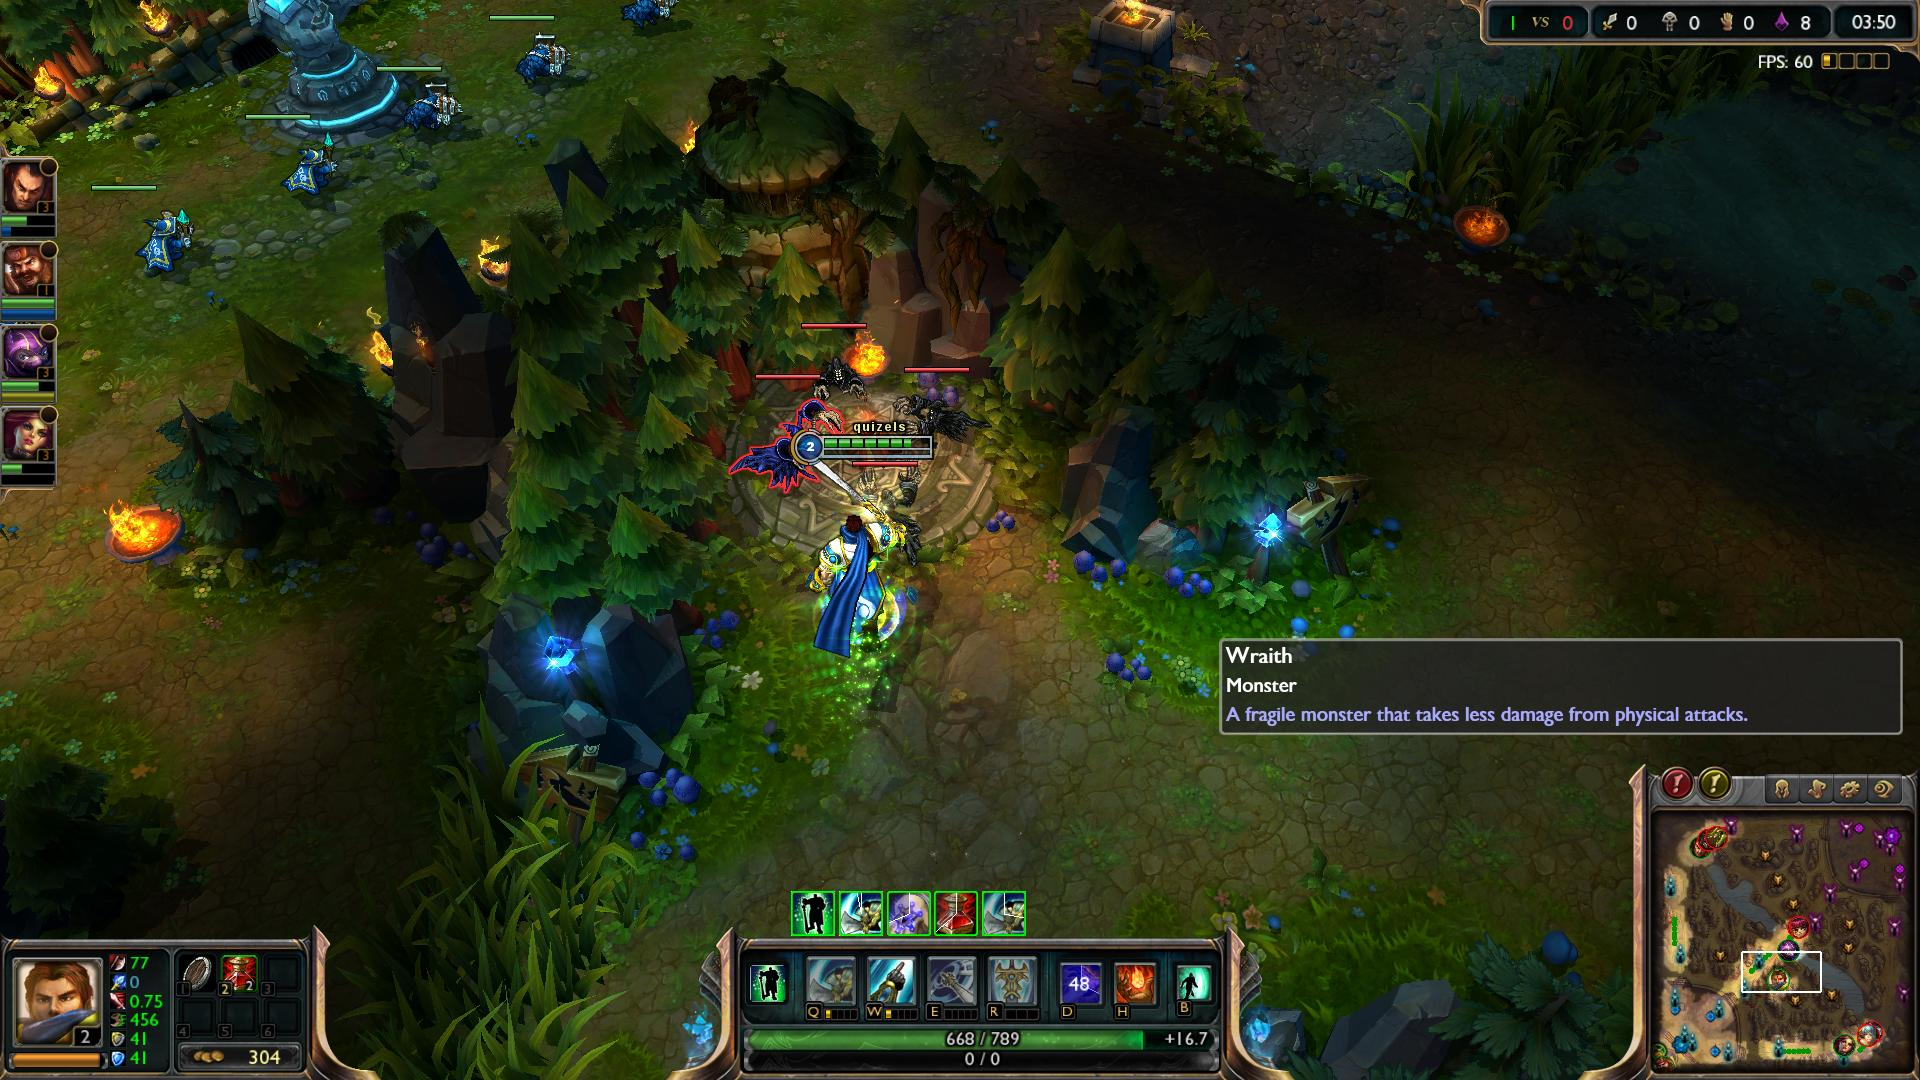 Wraith League of Legends lol screenshot